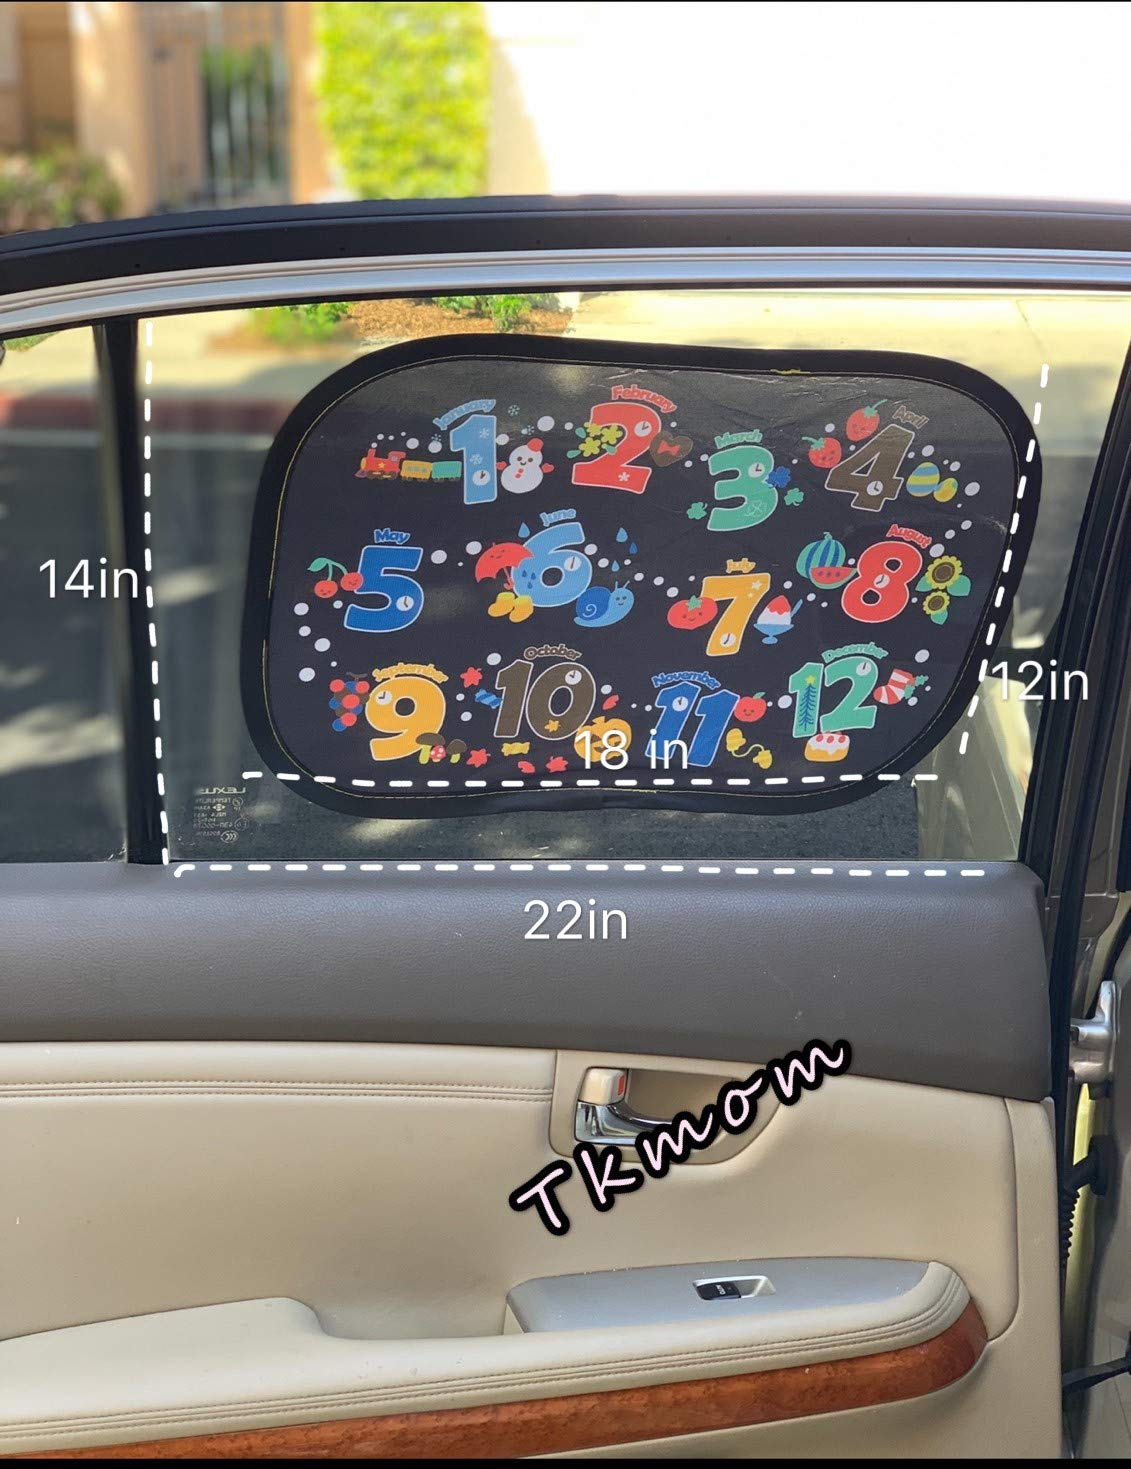 Pack of 2 Auto Static Cling Sun Shades Protector to Block Damaging UV Rays /& Bright Sunlight /& Heat,Best Auto Accessories for Kids German Letter /& Number TKmom Car Window Shades for Baby